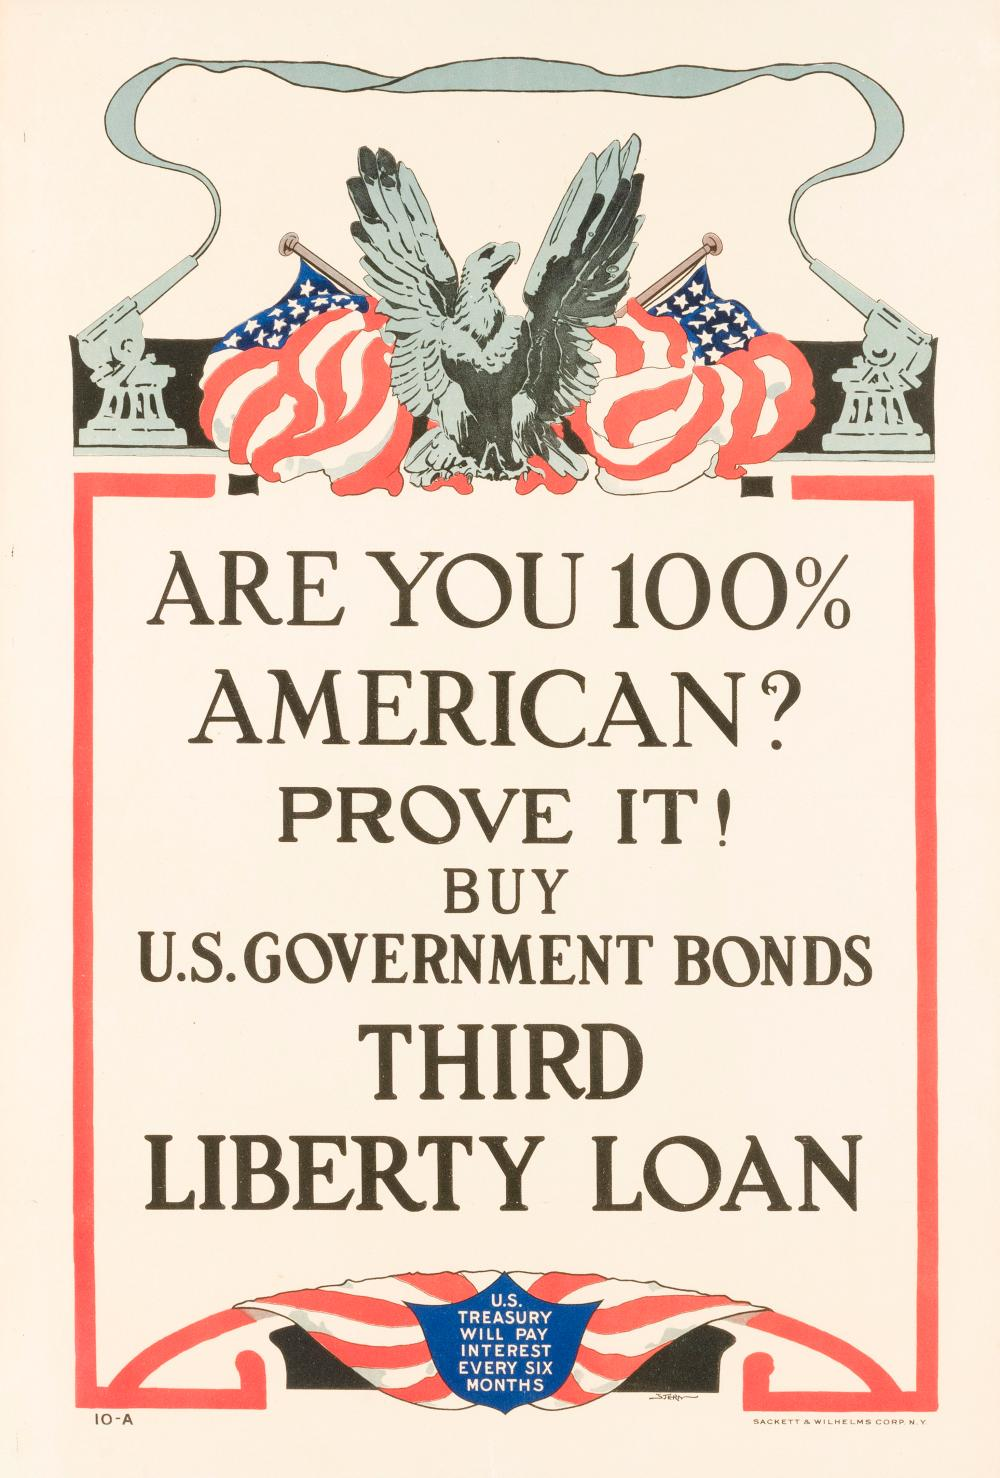 """""""ARE YOU 100% AMERICAN? PROVE IT! BUY U.S. GOVERNMENT BONDS"""" WORLD WAR I POSTER For the Third Liberty Loan, published by Sackett & W..."""